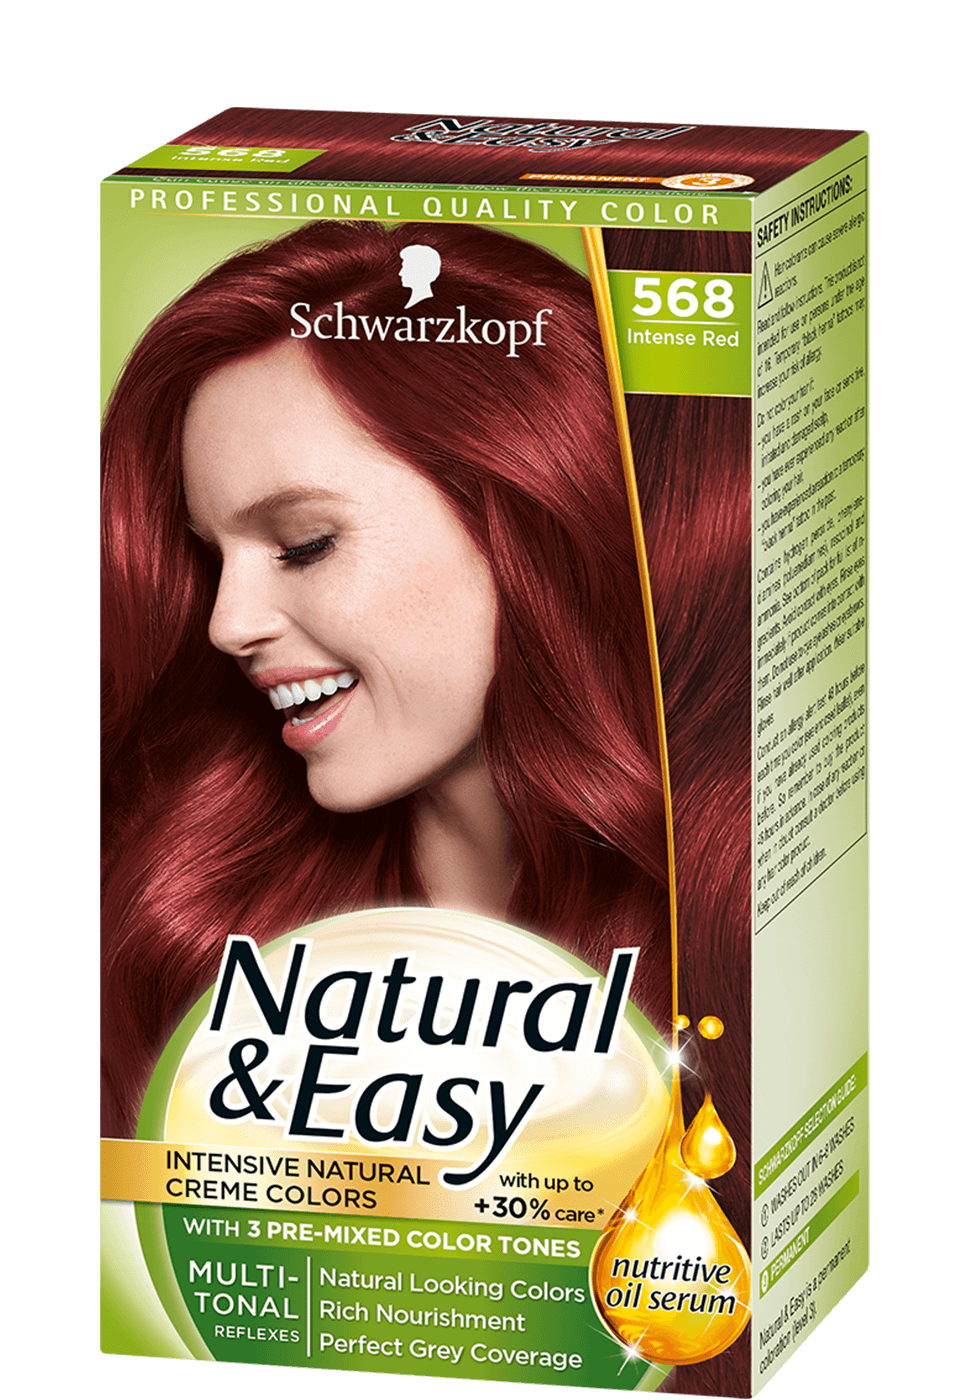 natural_easy_com_red_hair_568_intense_red_970x1400